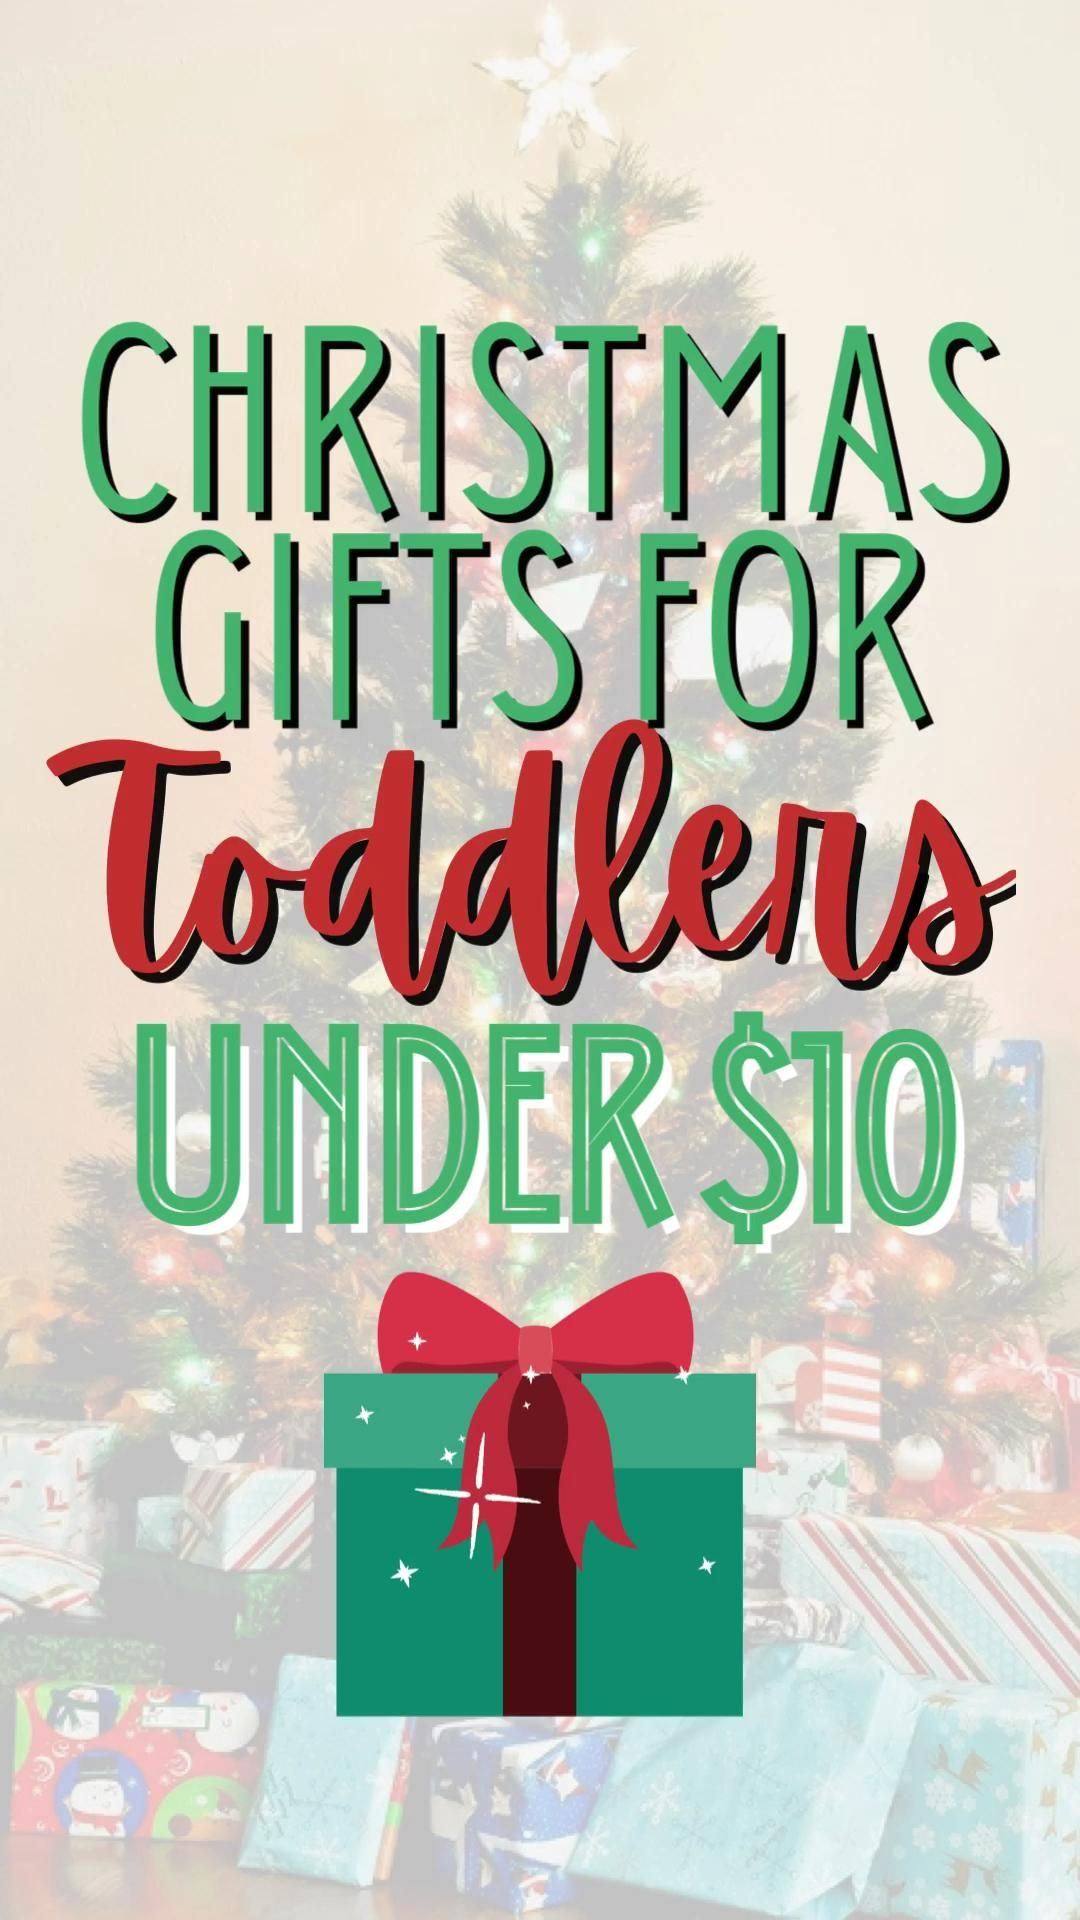 #christmasgifts #toddleractivity #toddlerlearningactivities #toddlerlife #giftsforkids